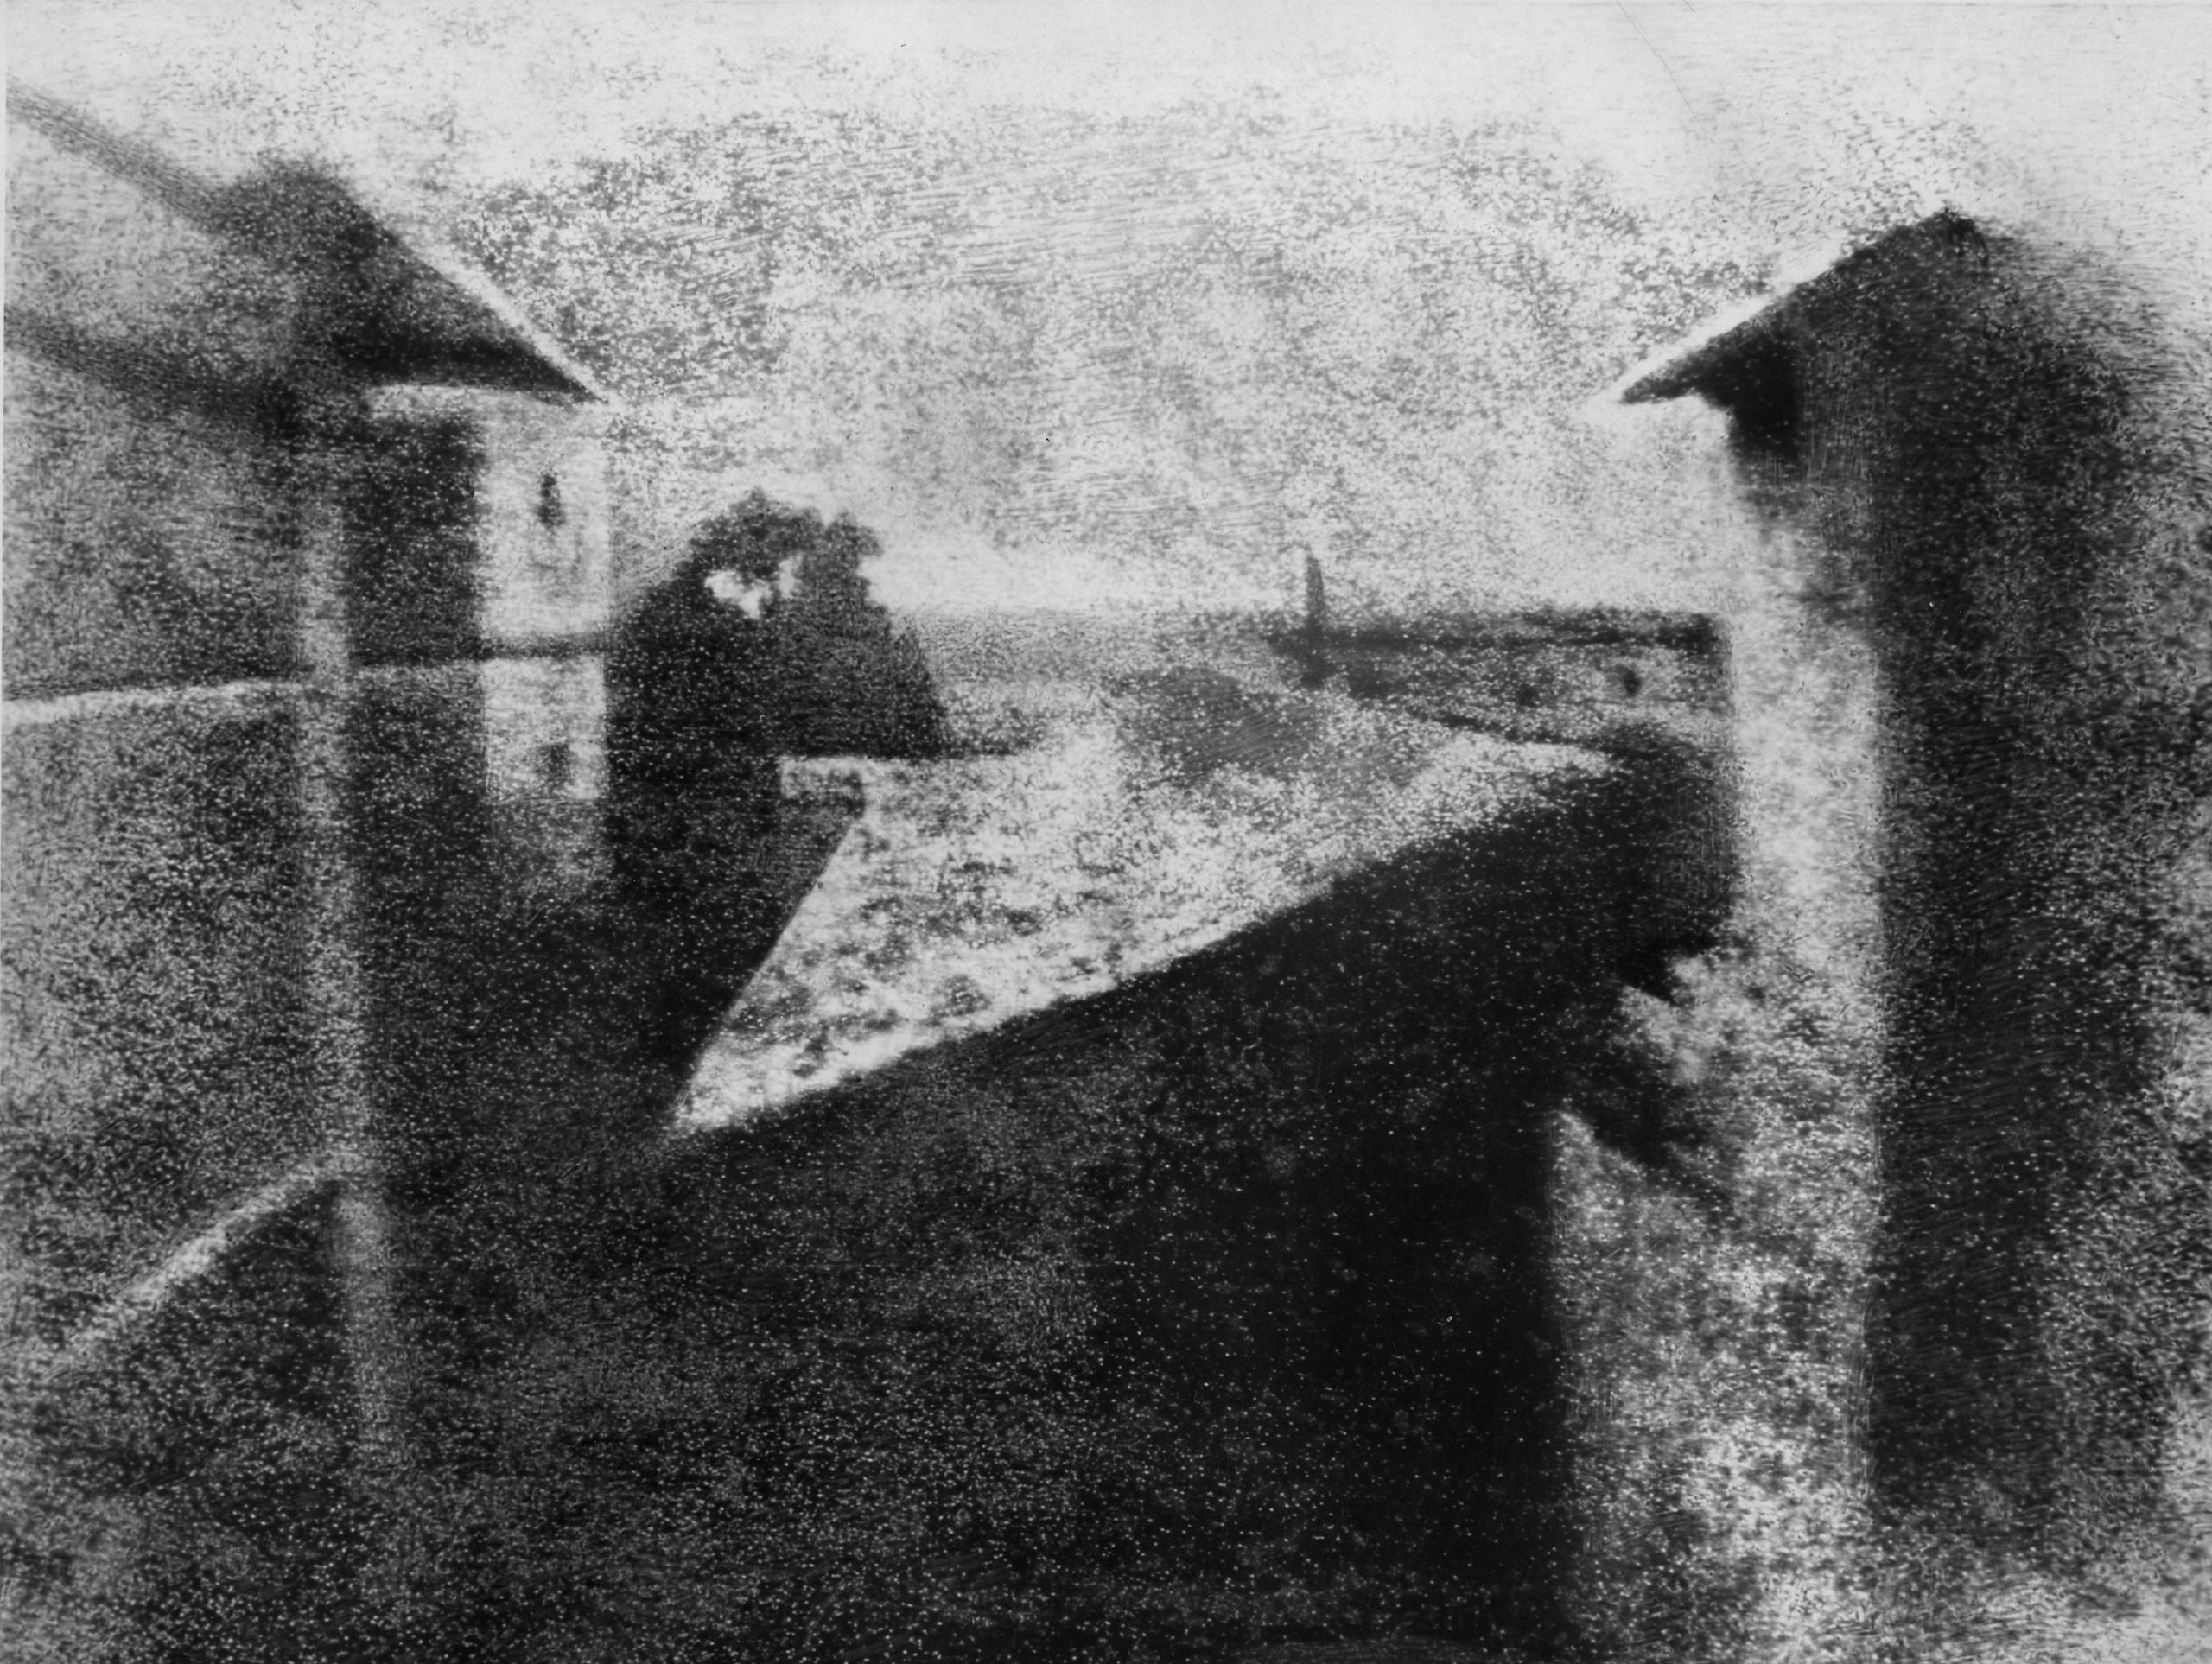 View from the Window at Le Gras by Joseph Nicéphore Niépce, 1826.